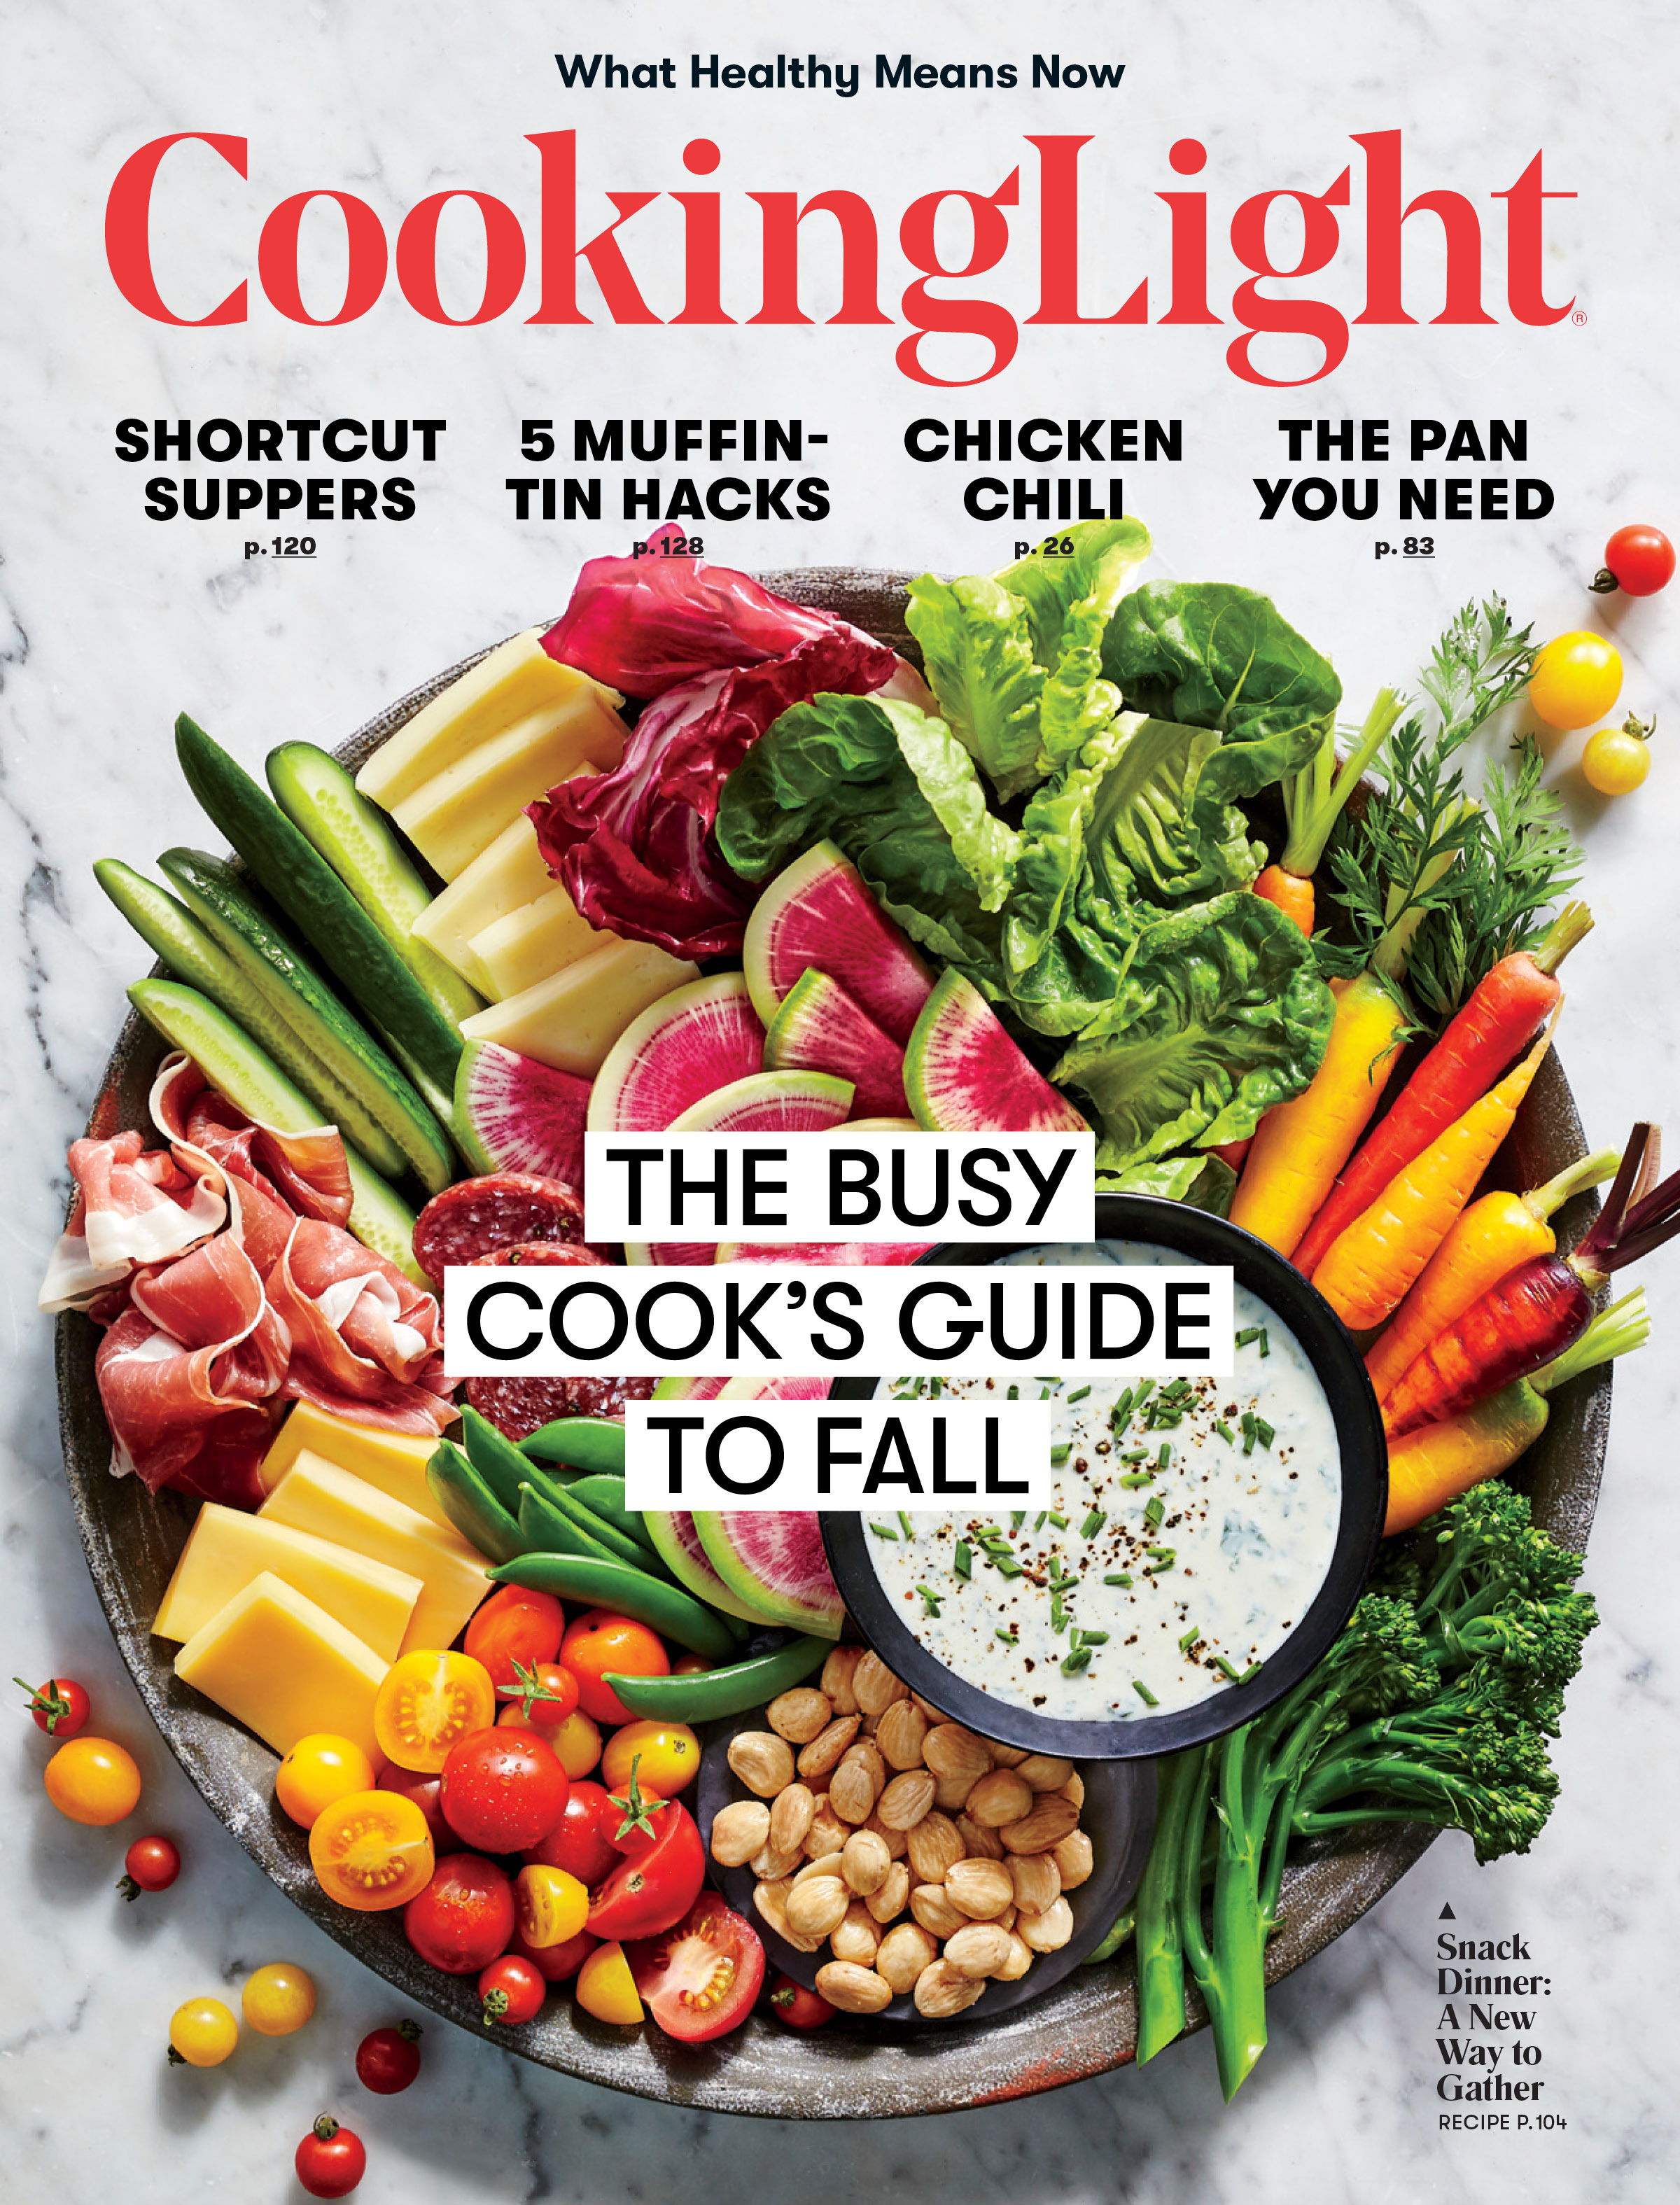 Cooking Light Redesign - While reaching 30 years in publication is no small feat, the Cooking Light team also had something more to celebrate with their recent September issue. The 30th Anniversary Issue featured an unveiling of a fresh new redesign and rebranding. The issue revealed both new content and a new design that emphasized a shift toward focusing on